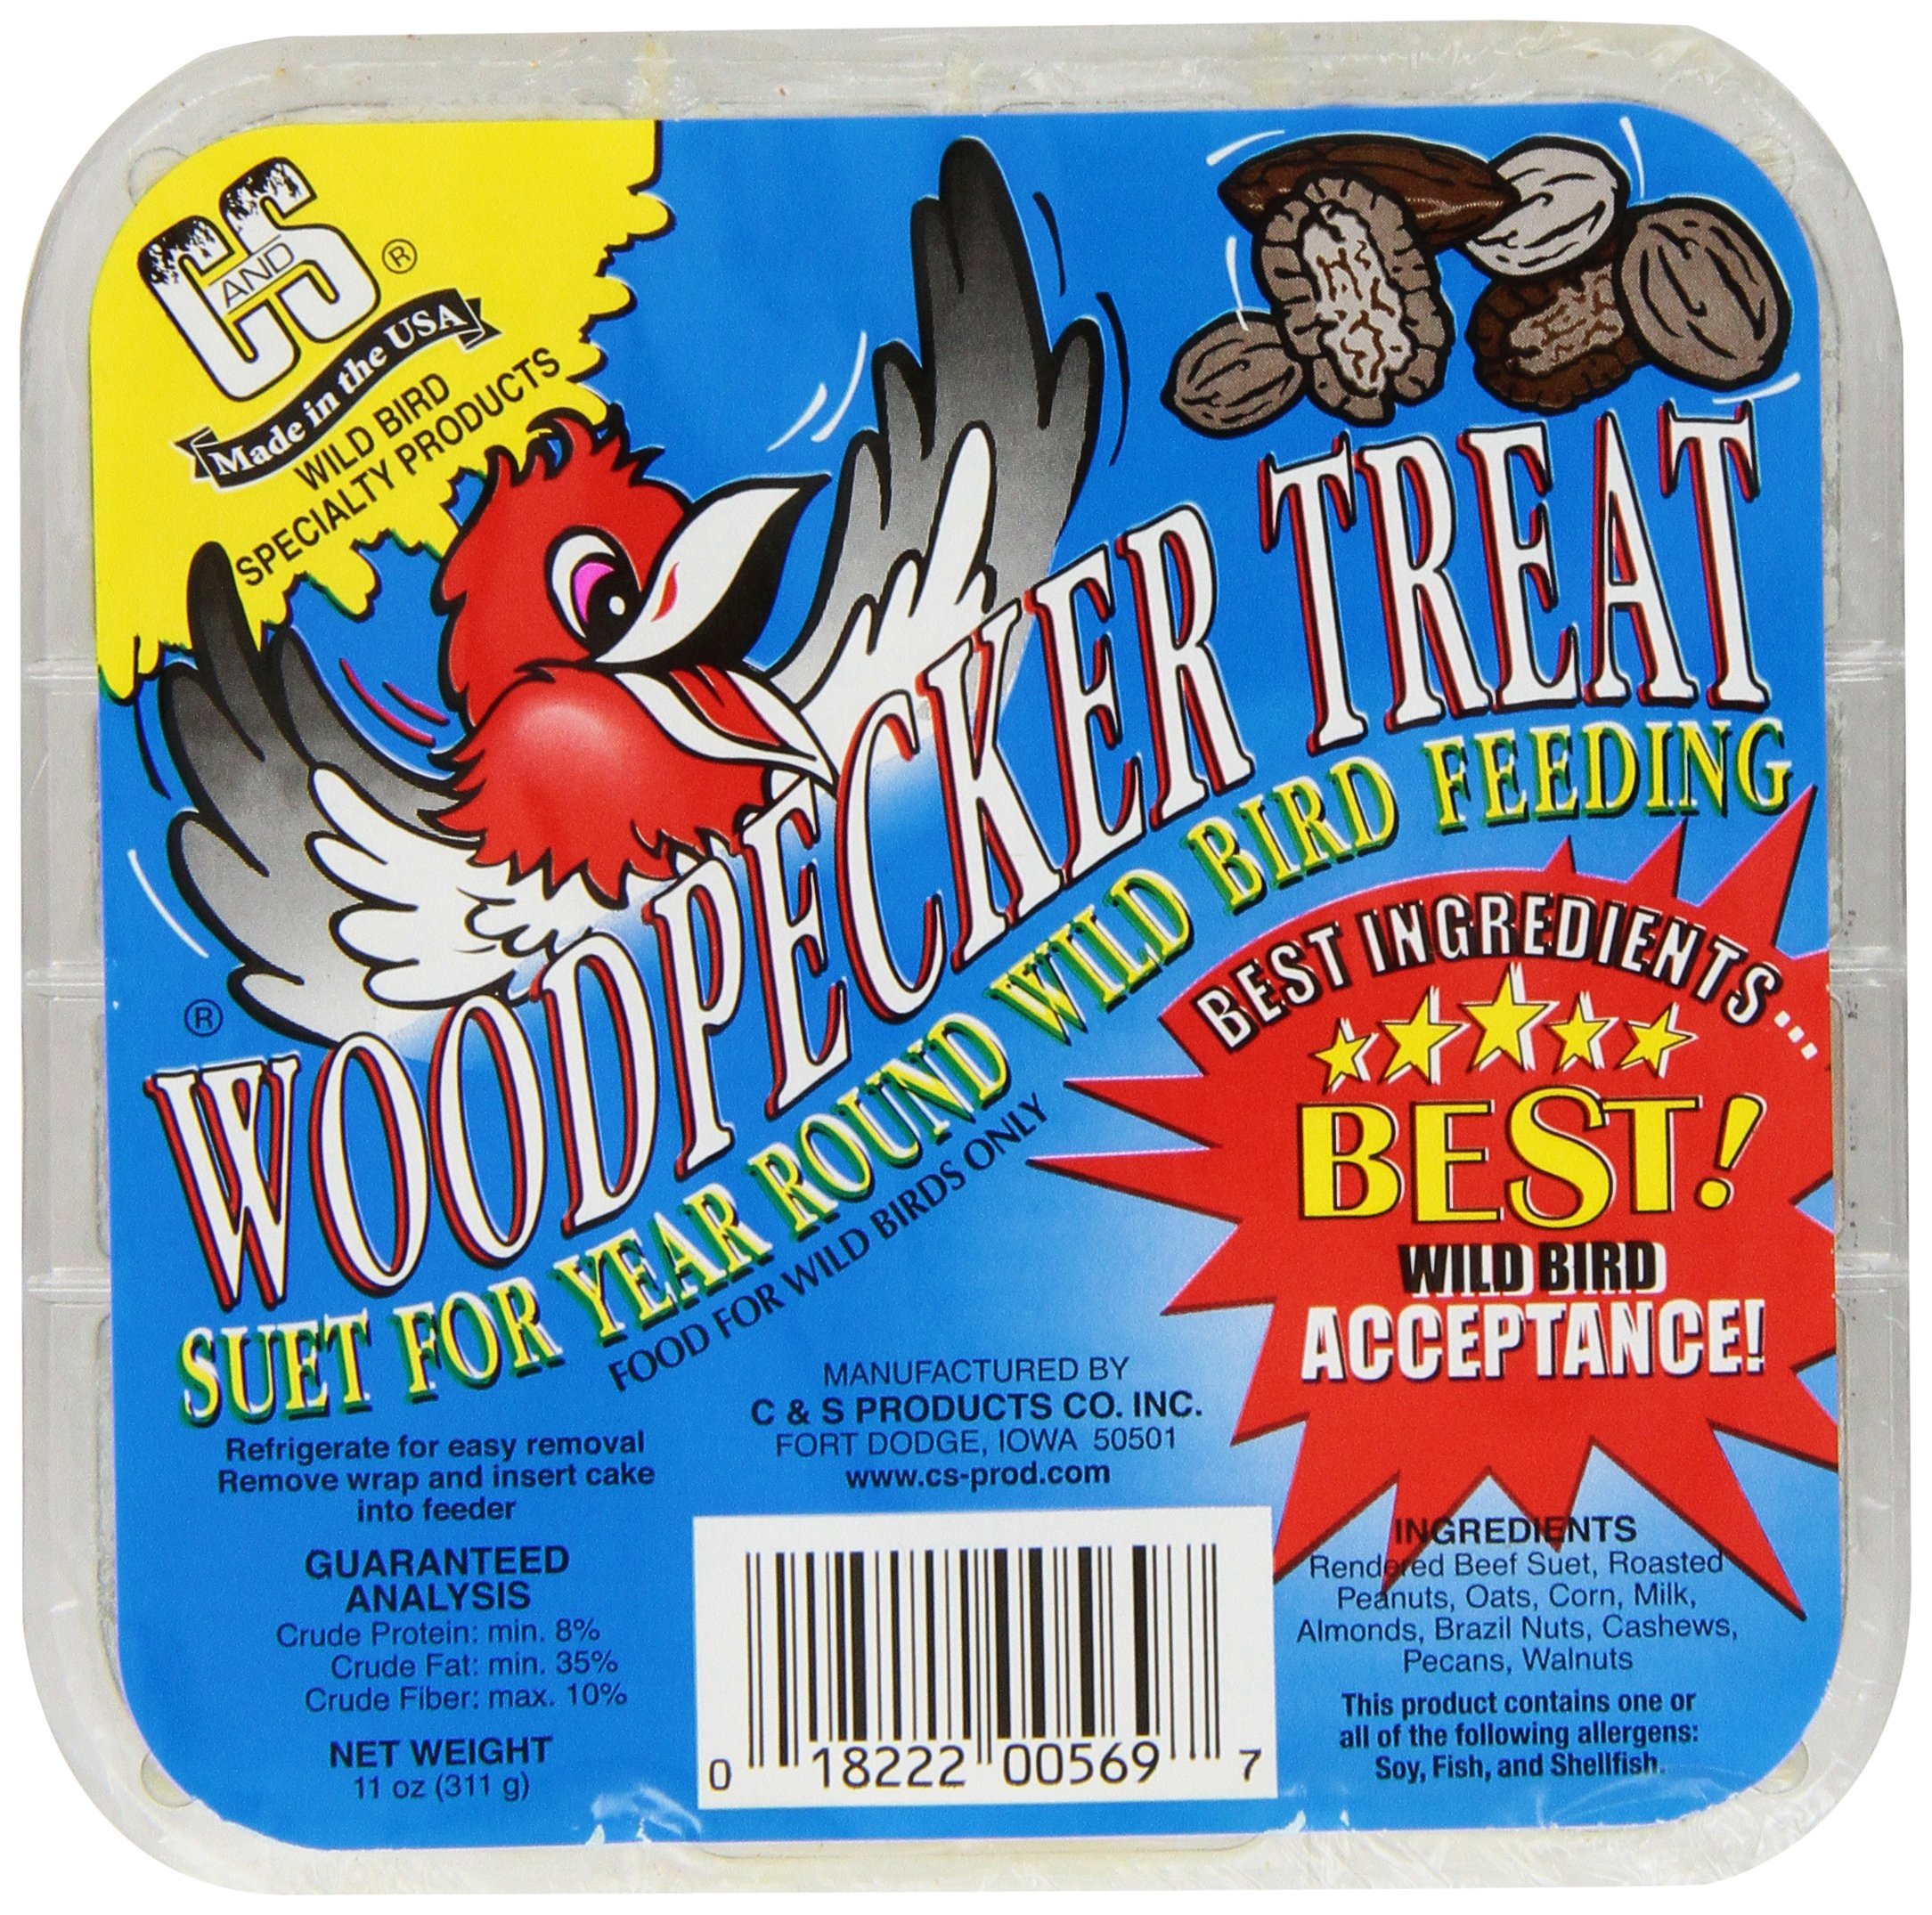 C & S Products Woodpecker Treat, 12-Piece by C & S Products